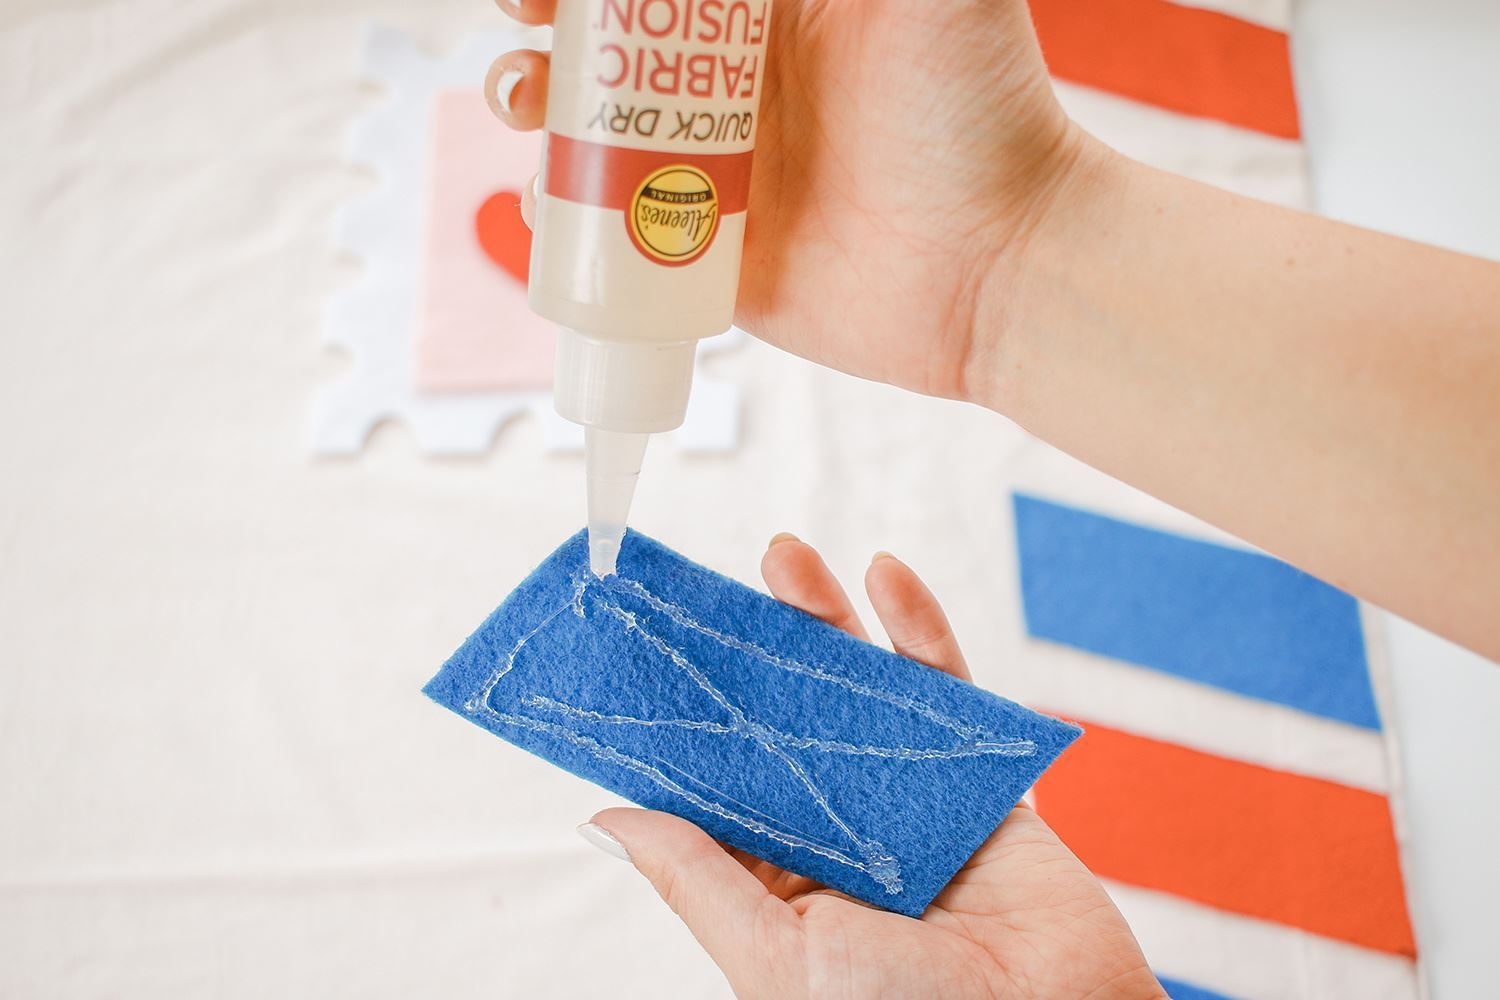 Glue strips in place with Quick Dry Fabric Fusion